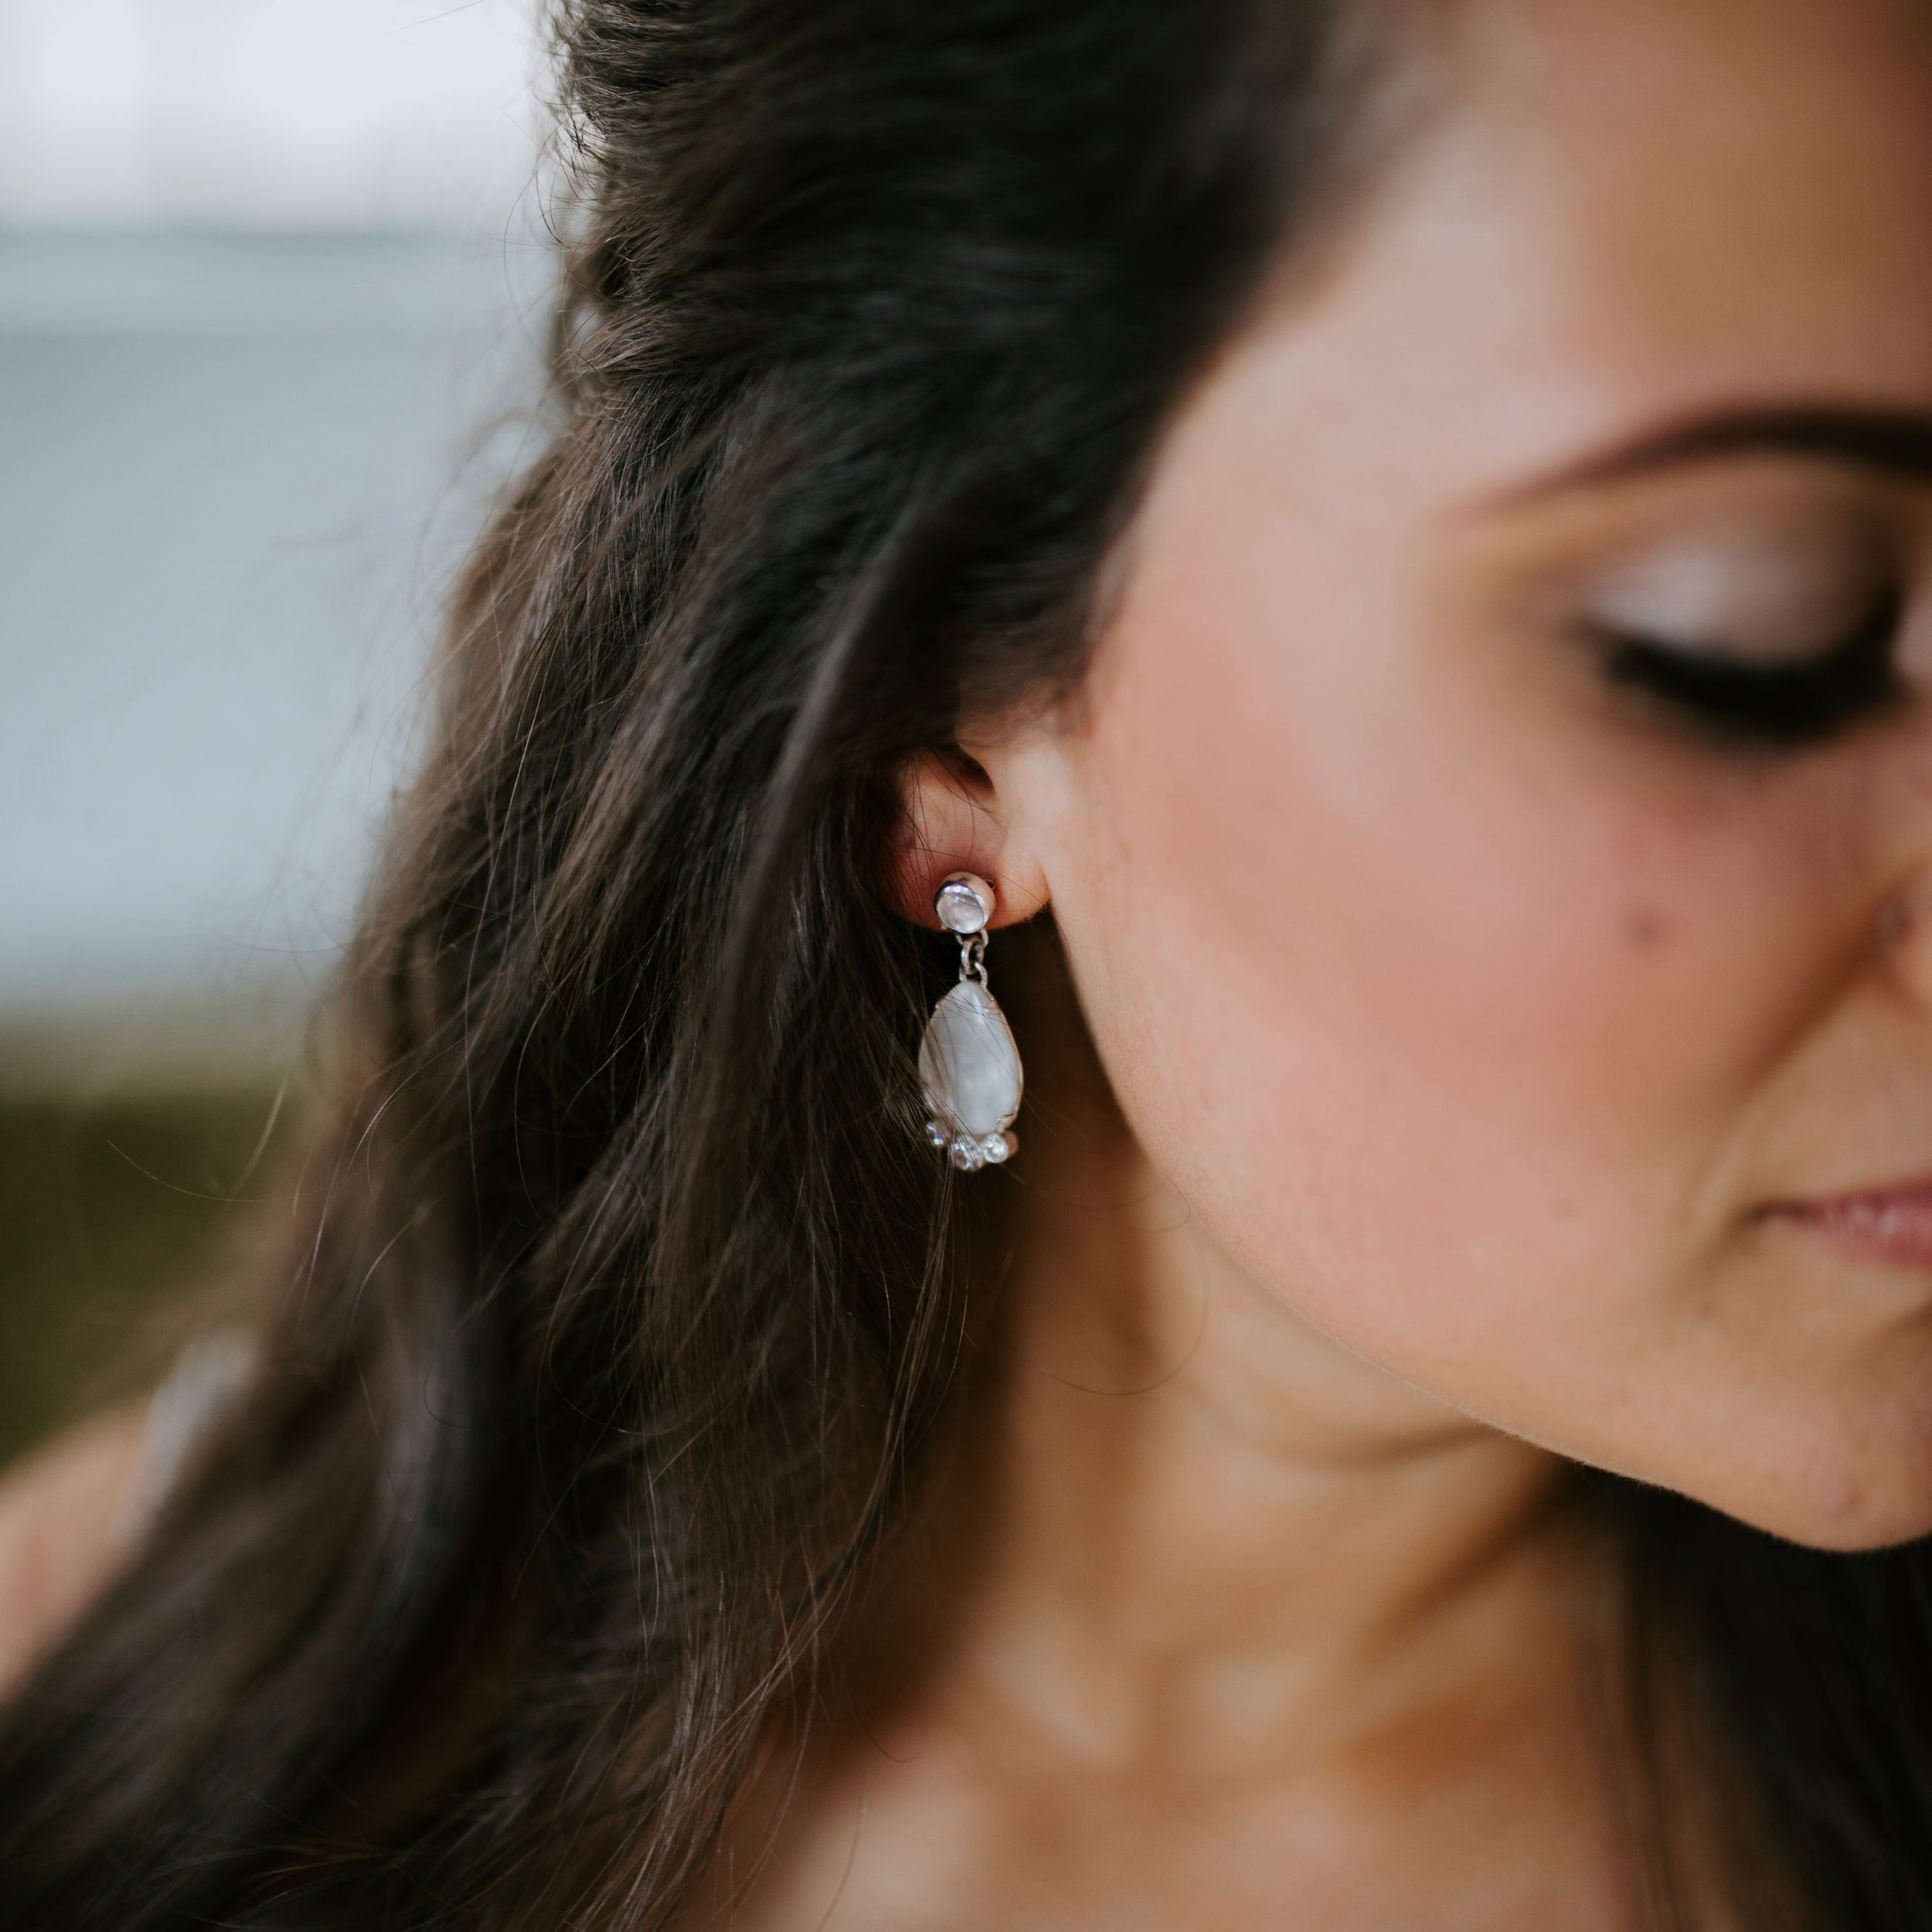 Kayleigh - Kayleigh approached me a few months before her wedding saying that she was looking for a custom pair of earrings to wear on her special day. I couldn't have been happier! We set to work and thanks to her specific vision of what she wanted, I was able to create exactly what she wanted down to the size, stone and design. She couldn't be happier with how they turned out and I couldn't be either!